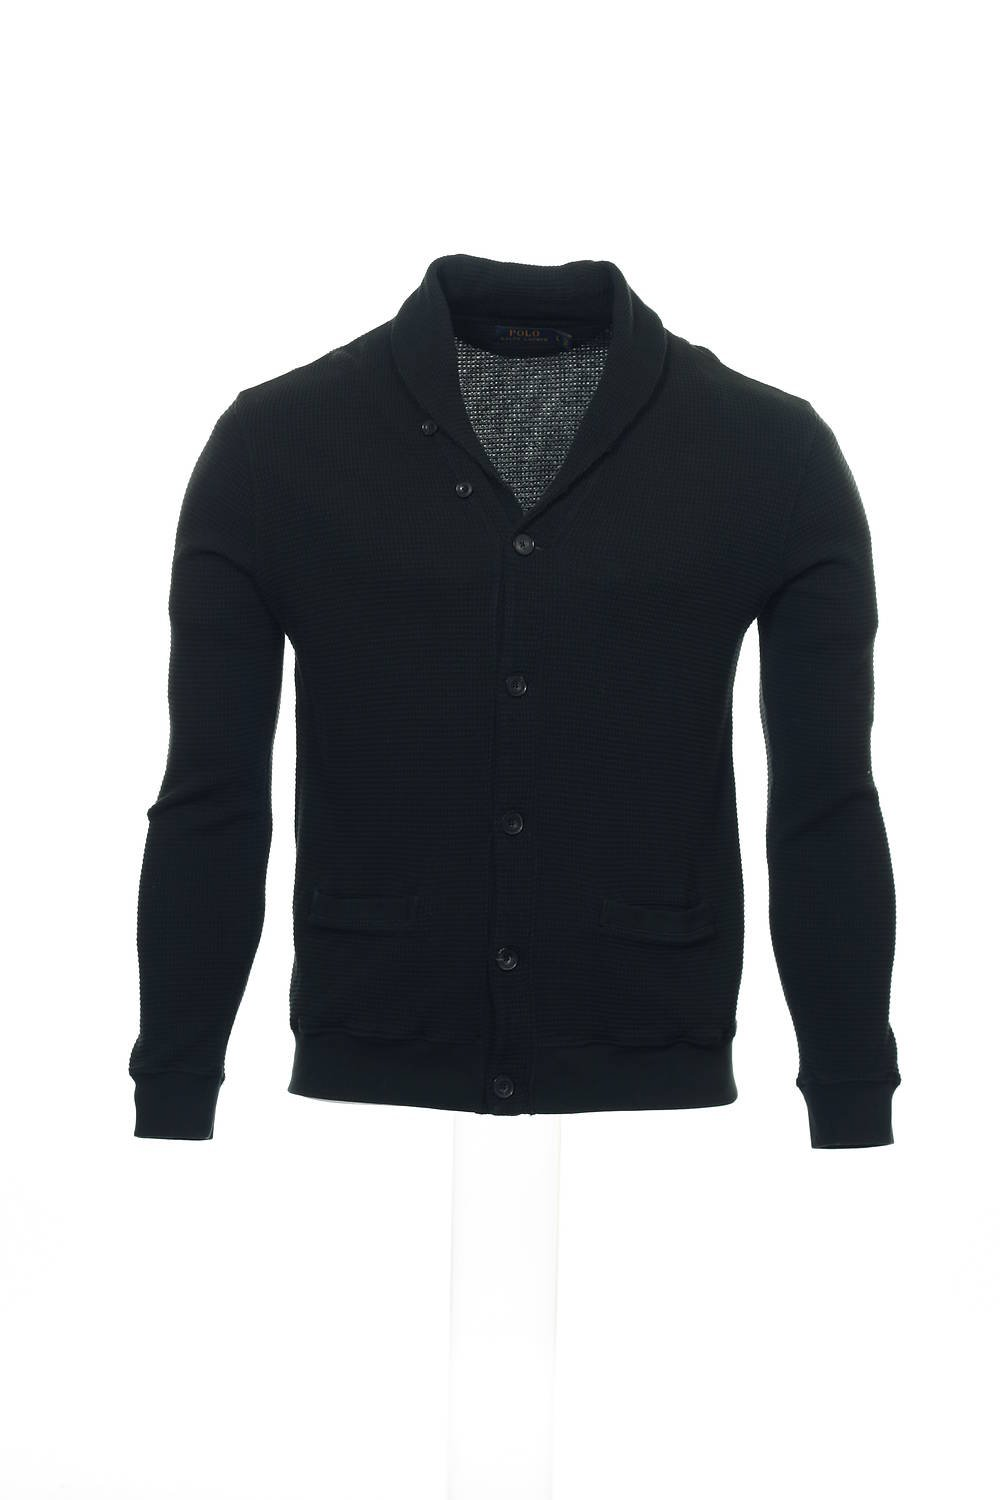 POLO by Ralph Lauren Black Shawl Neck Sweater , Size Large